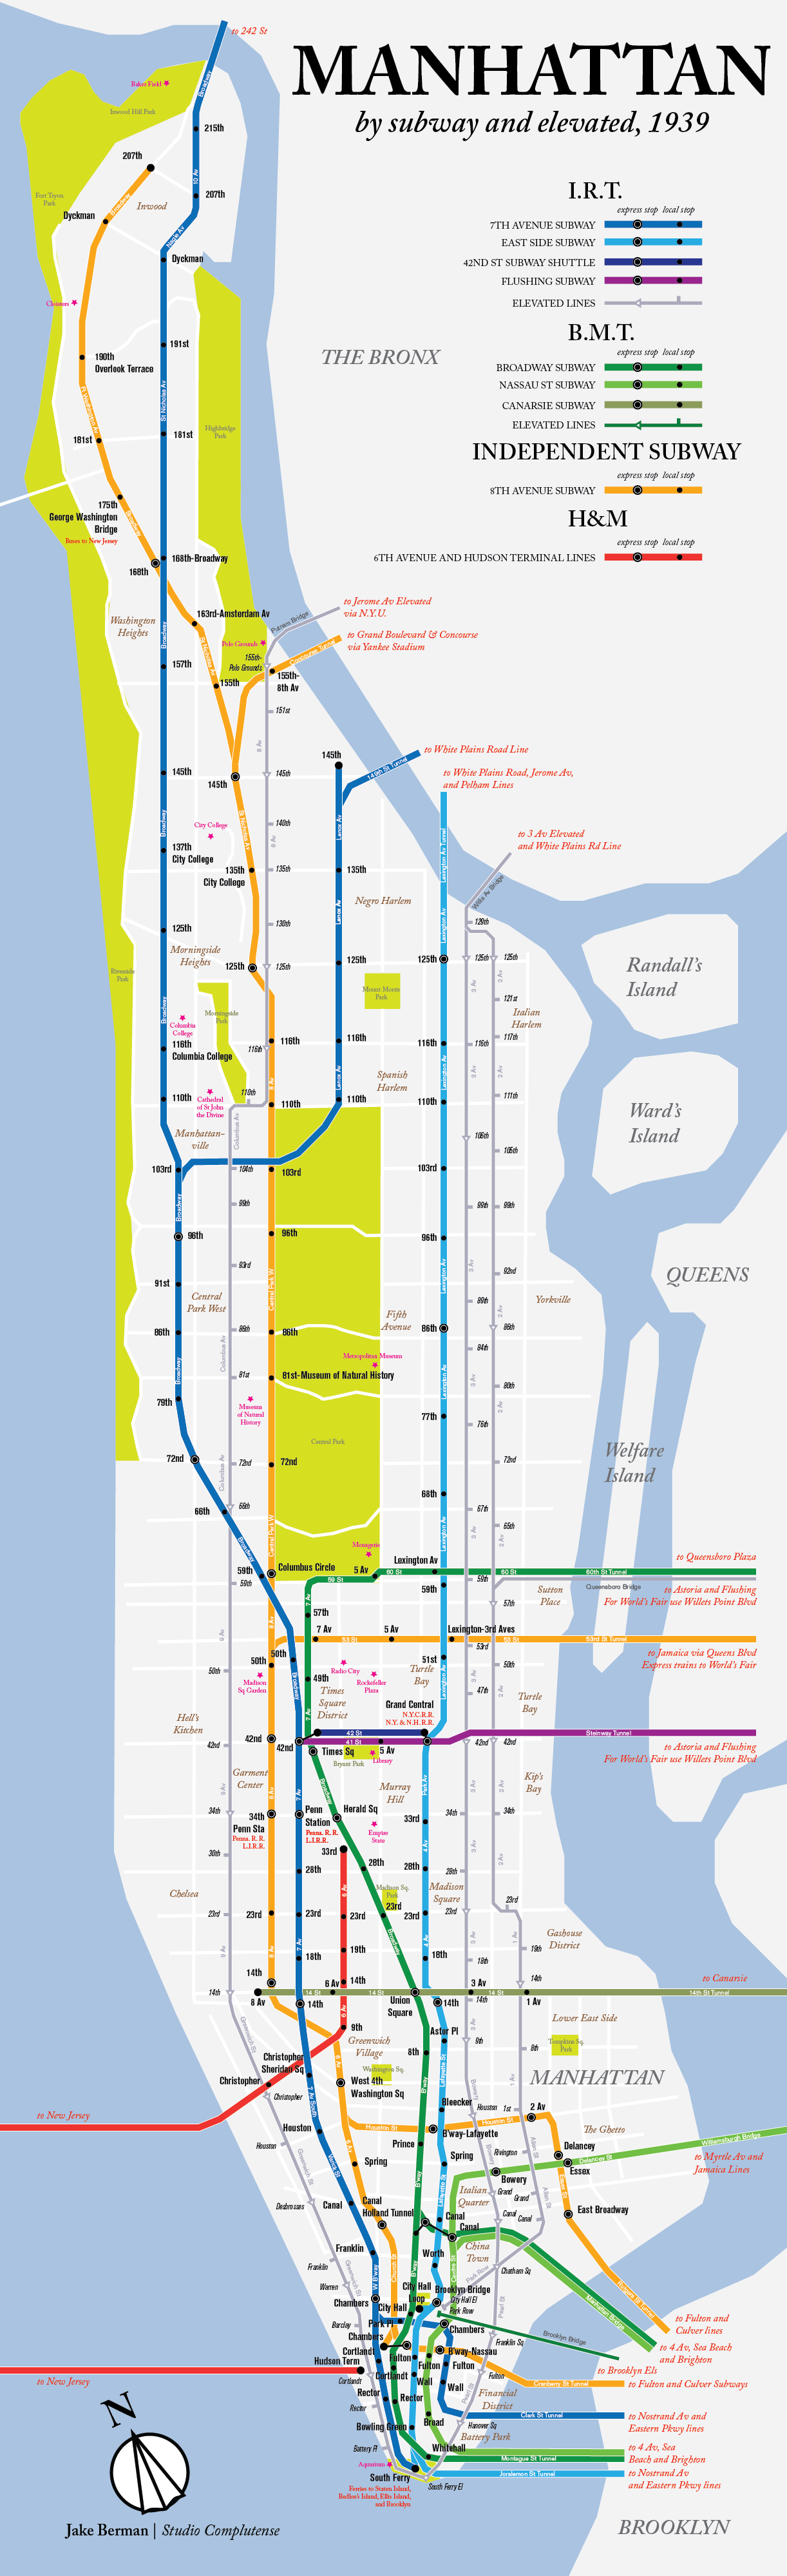 New Subway Map 2nd Ave.Check Out This Modern Map Of Manhattan S 1939 Subway And Elevated